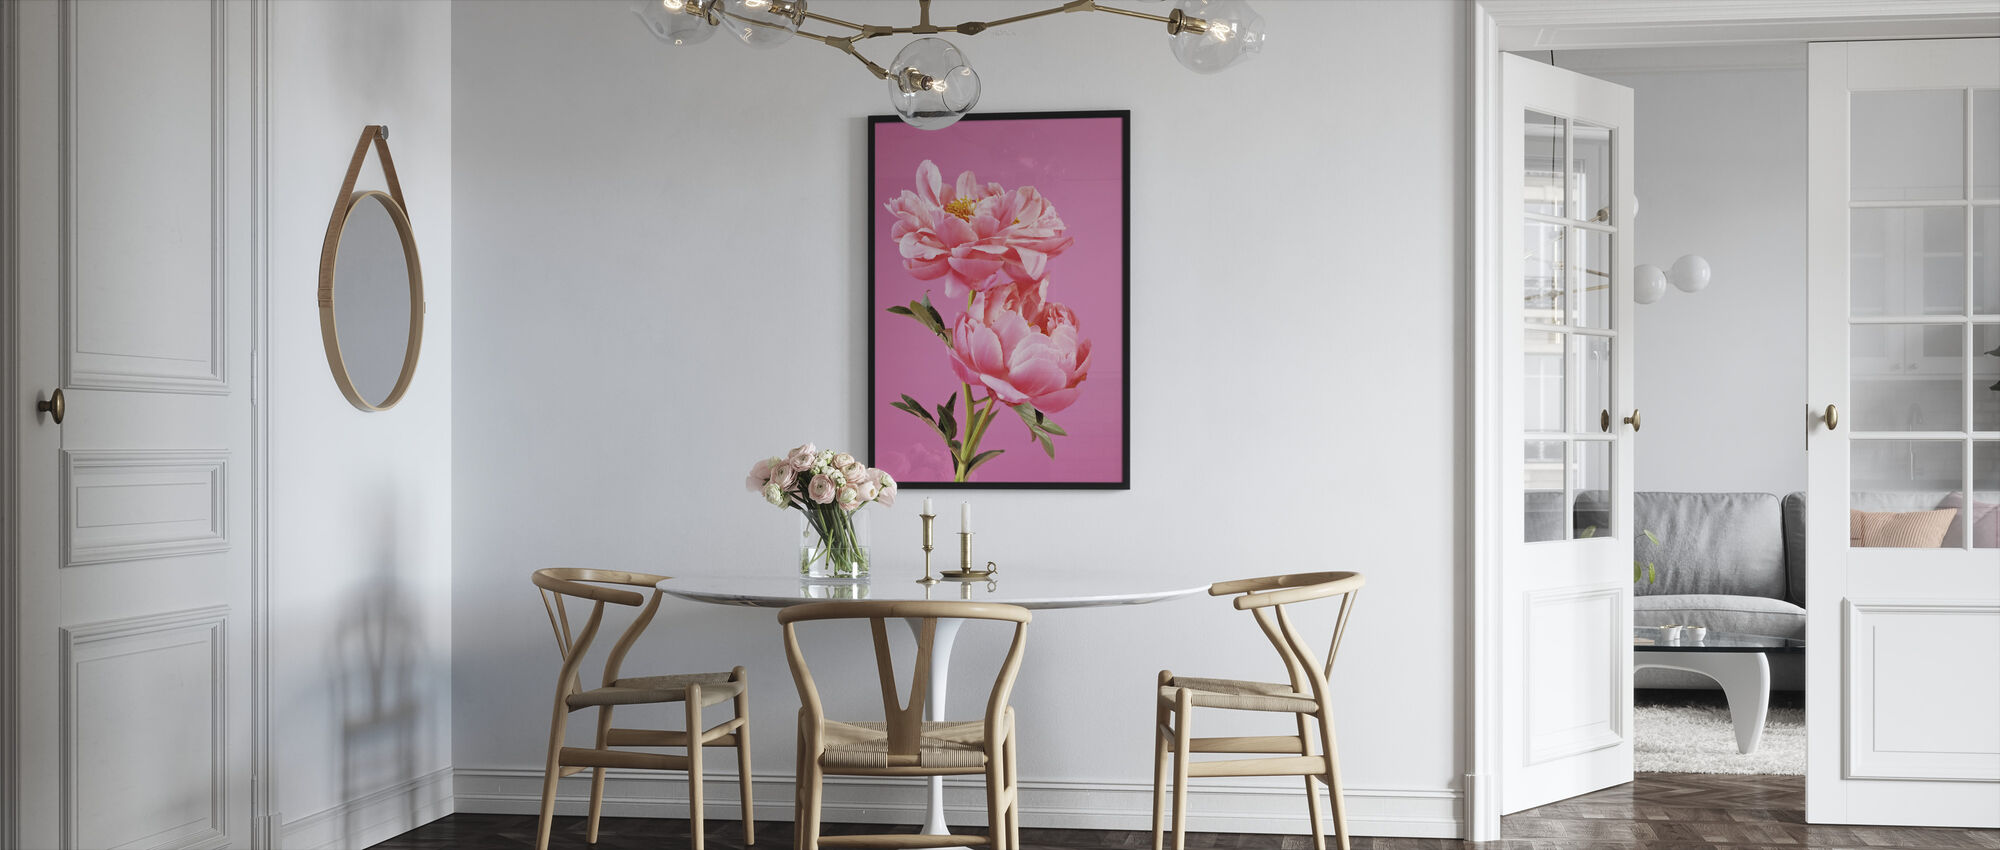 Pink Peonies - Framed print - Kitchen